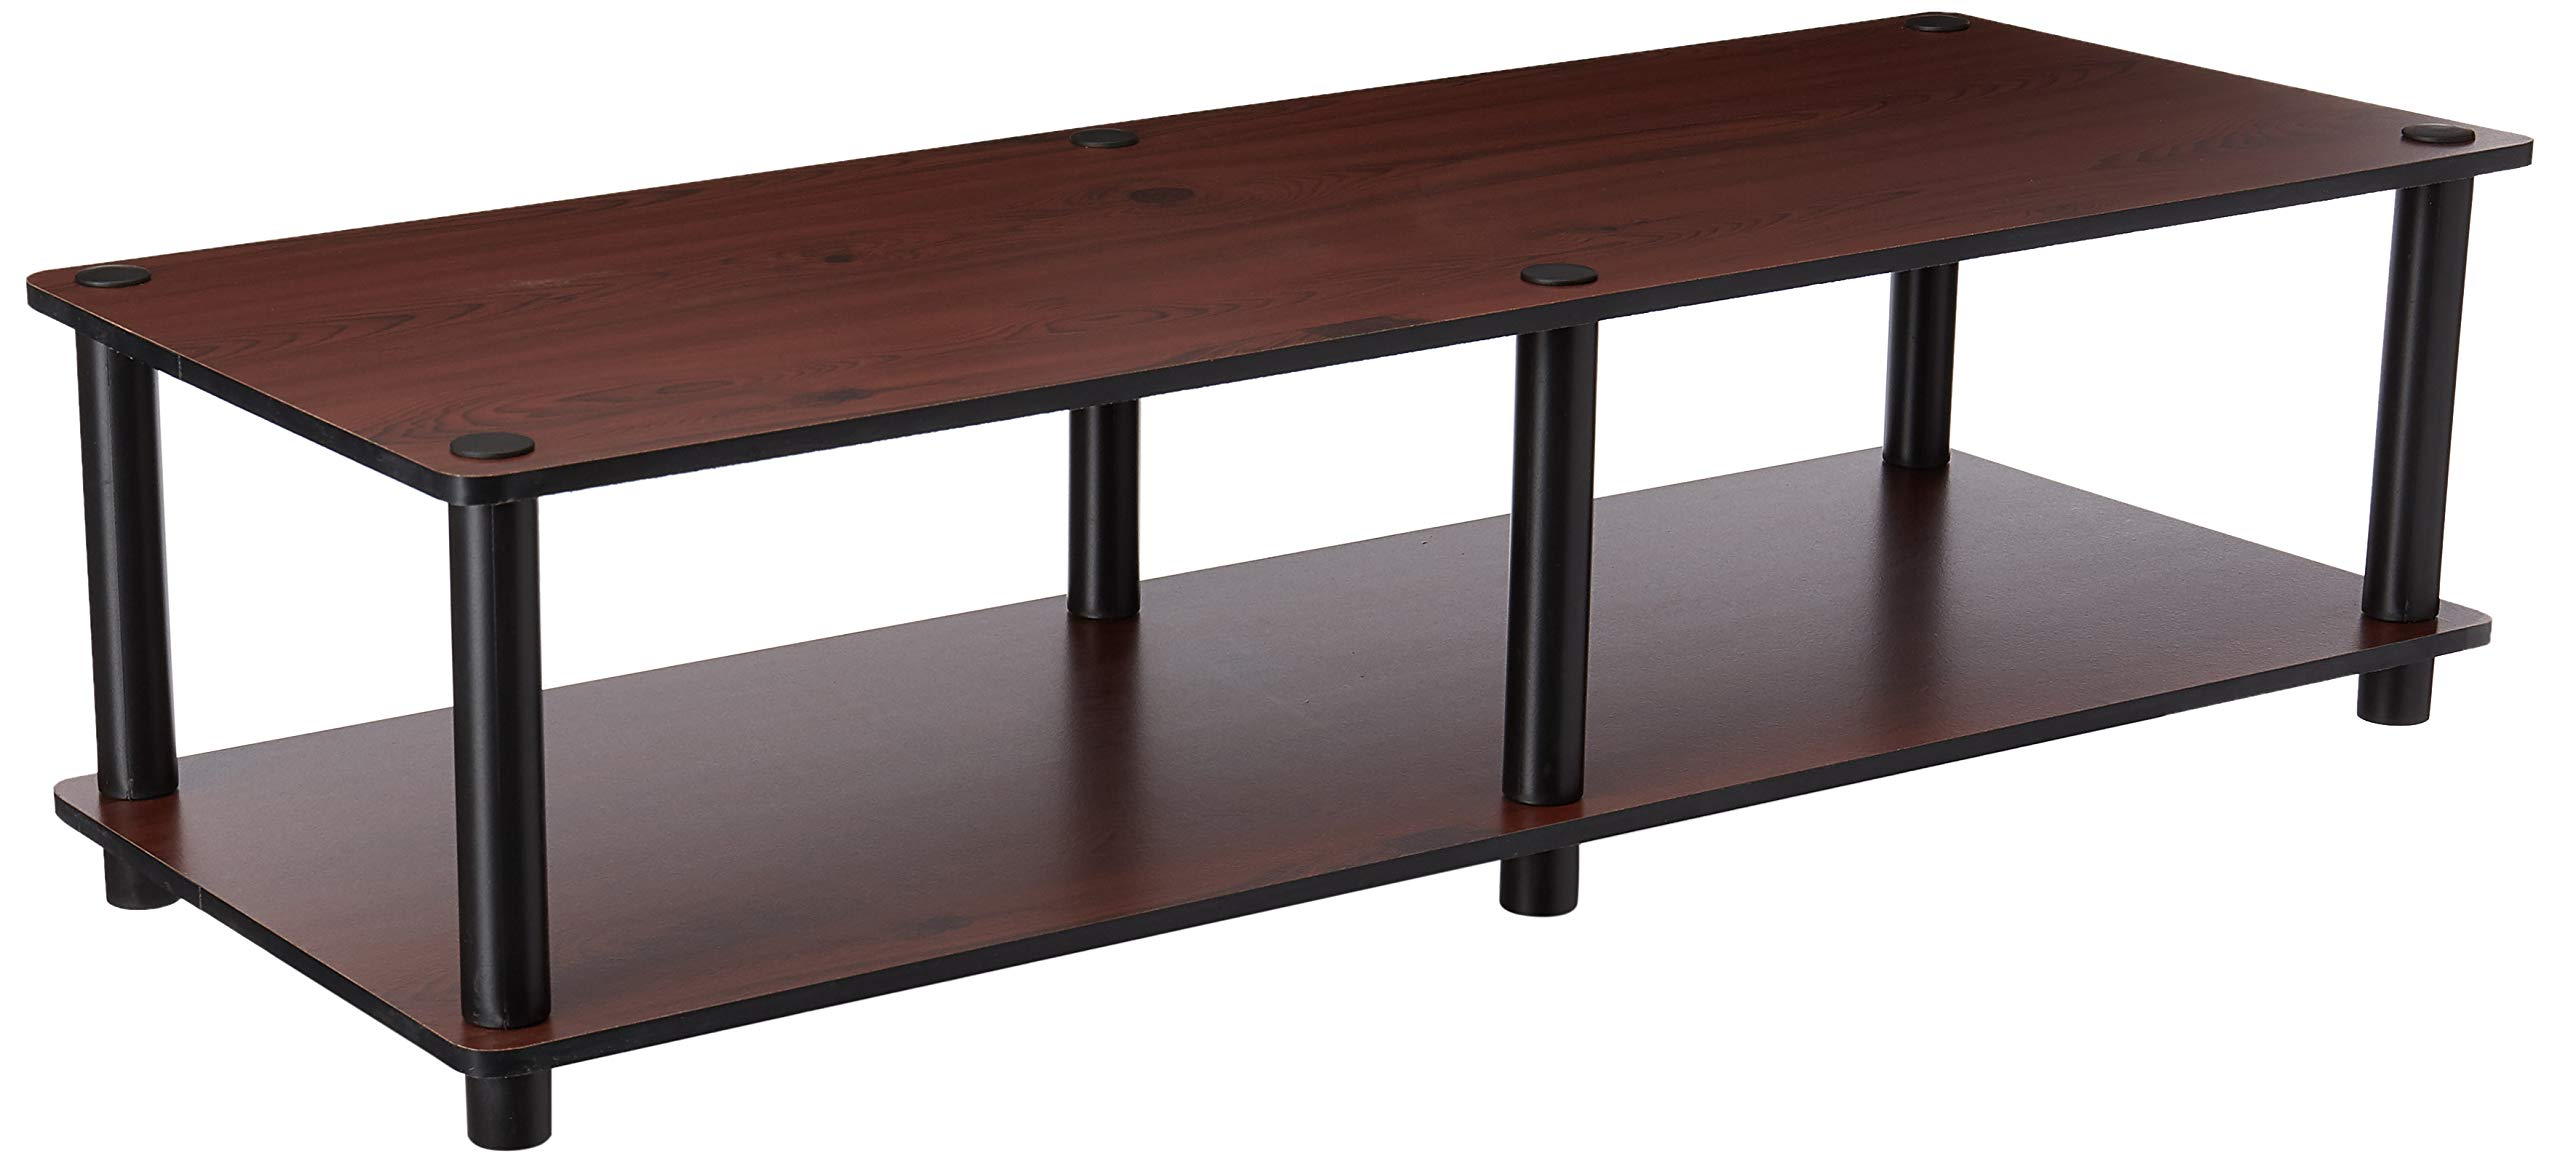 Furinno 11175DC(BK)/BK Just No Tools Dark Cherry Wide Television Stand with Black Tube